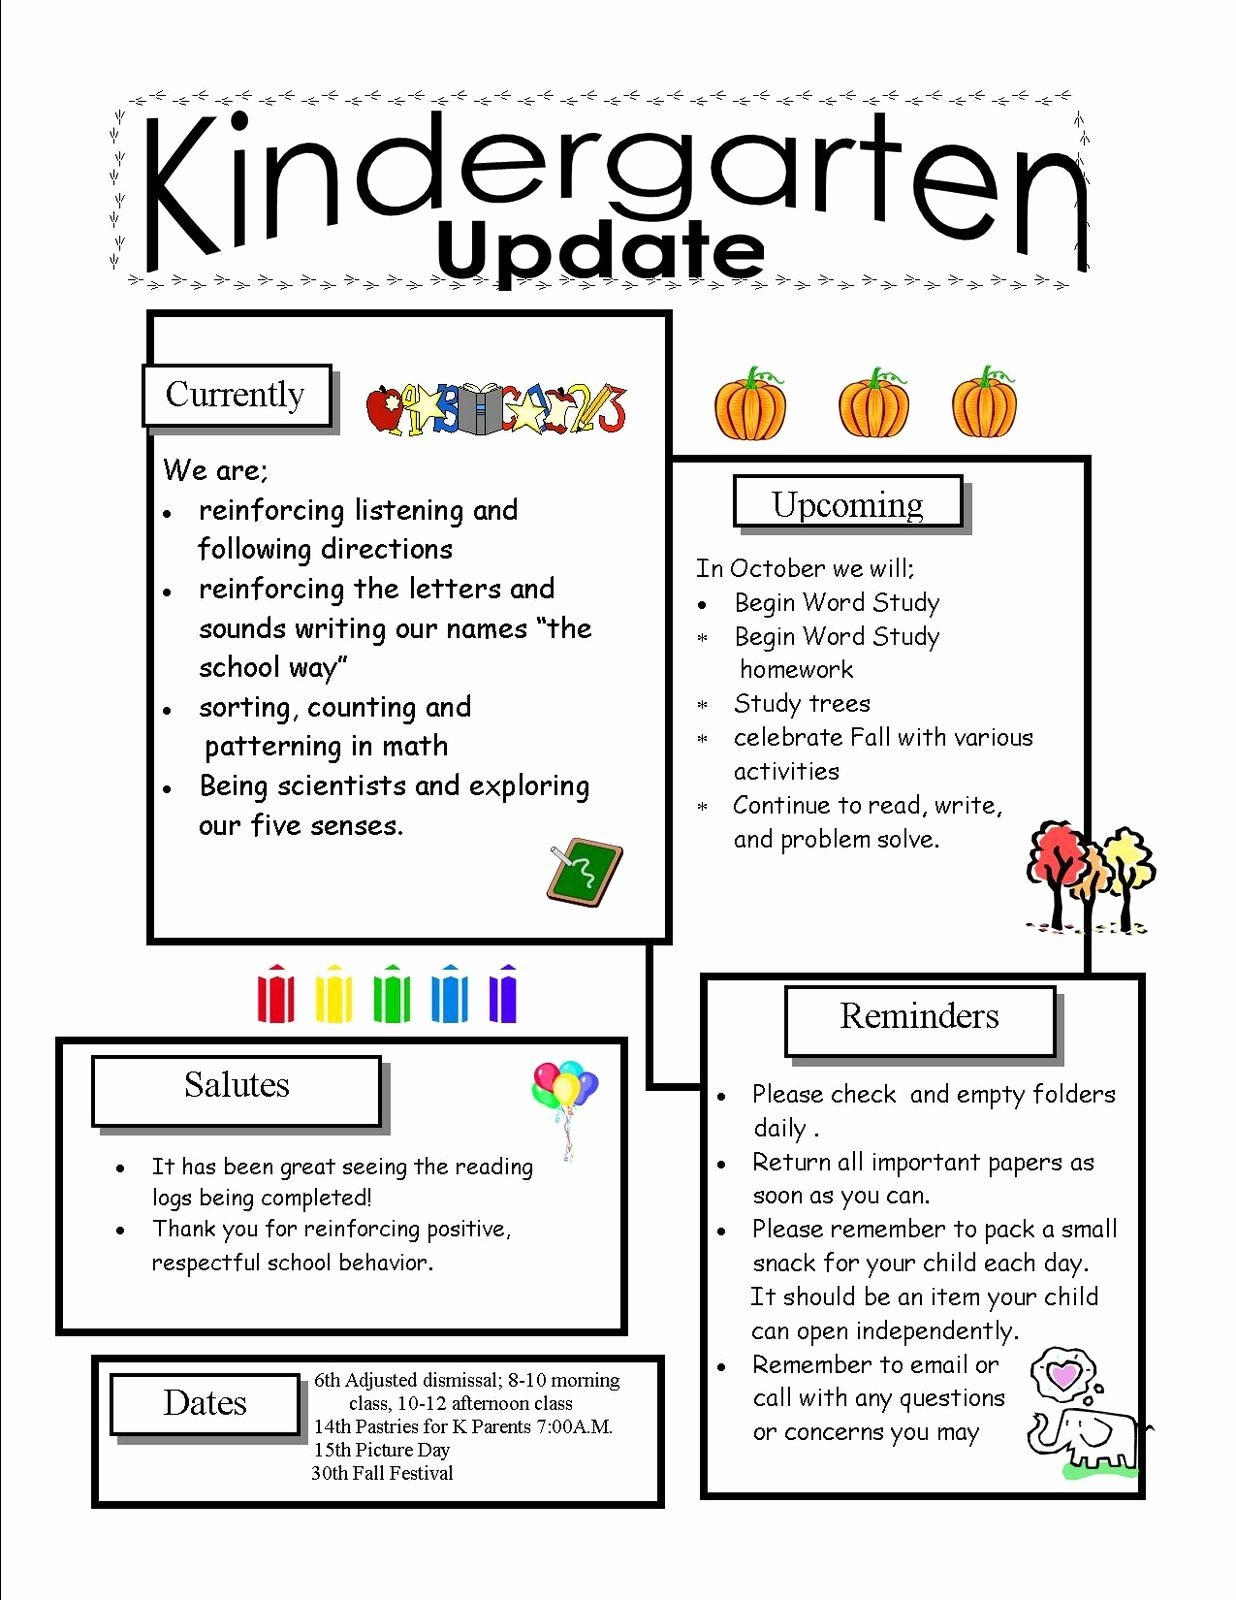 Preschool Newsletter Template Free Beautiful Kindergarten Newsletter Templates for Free